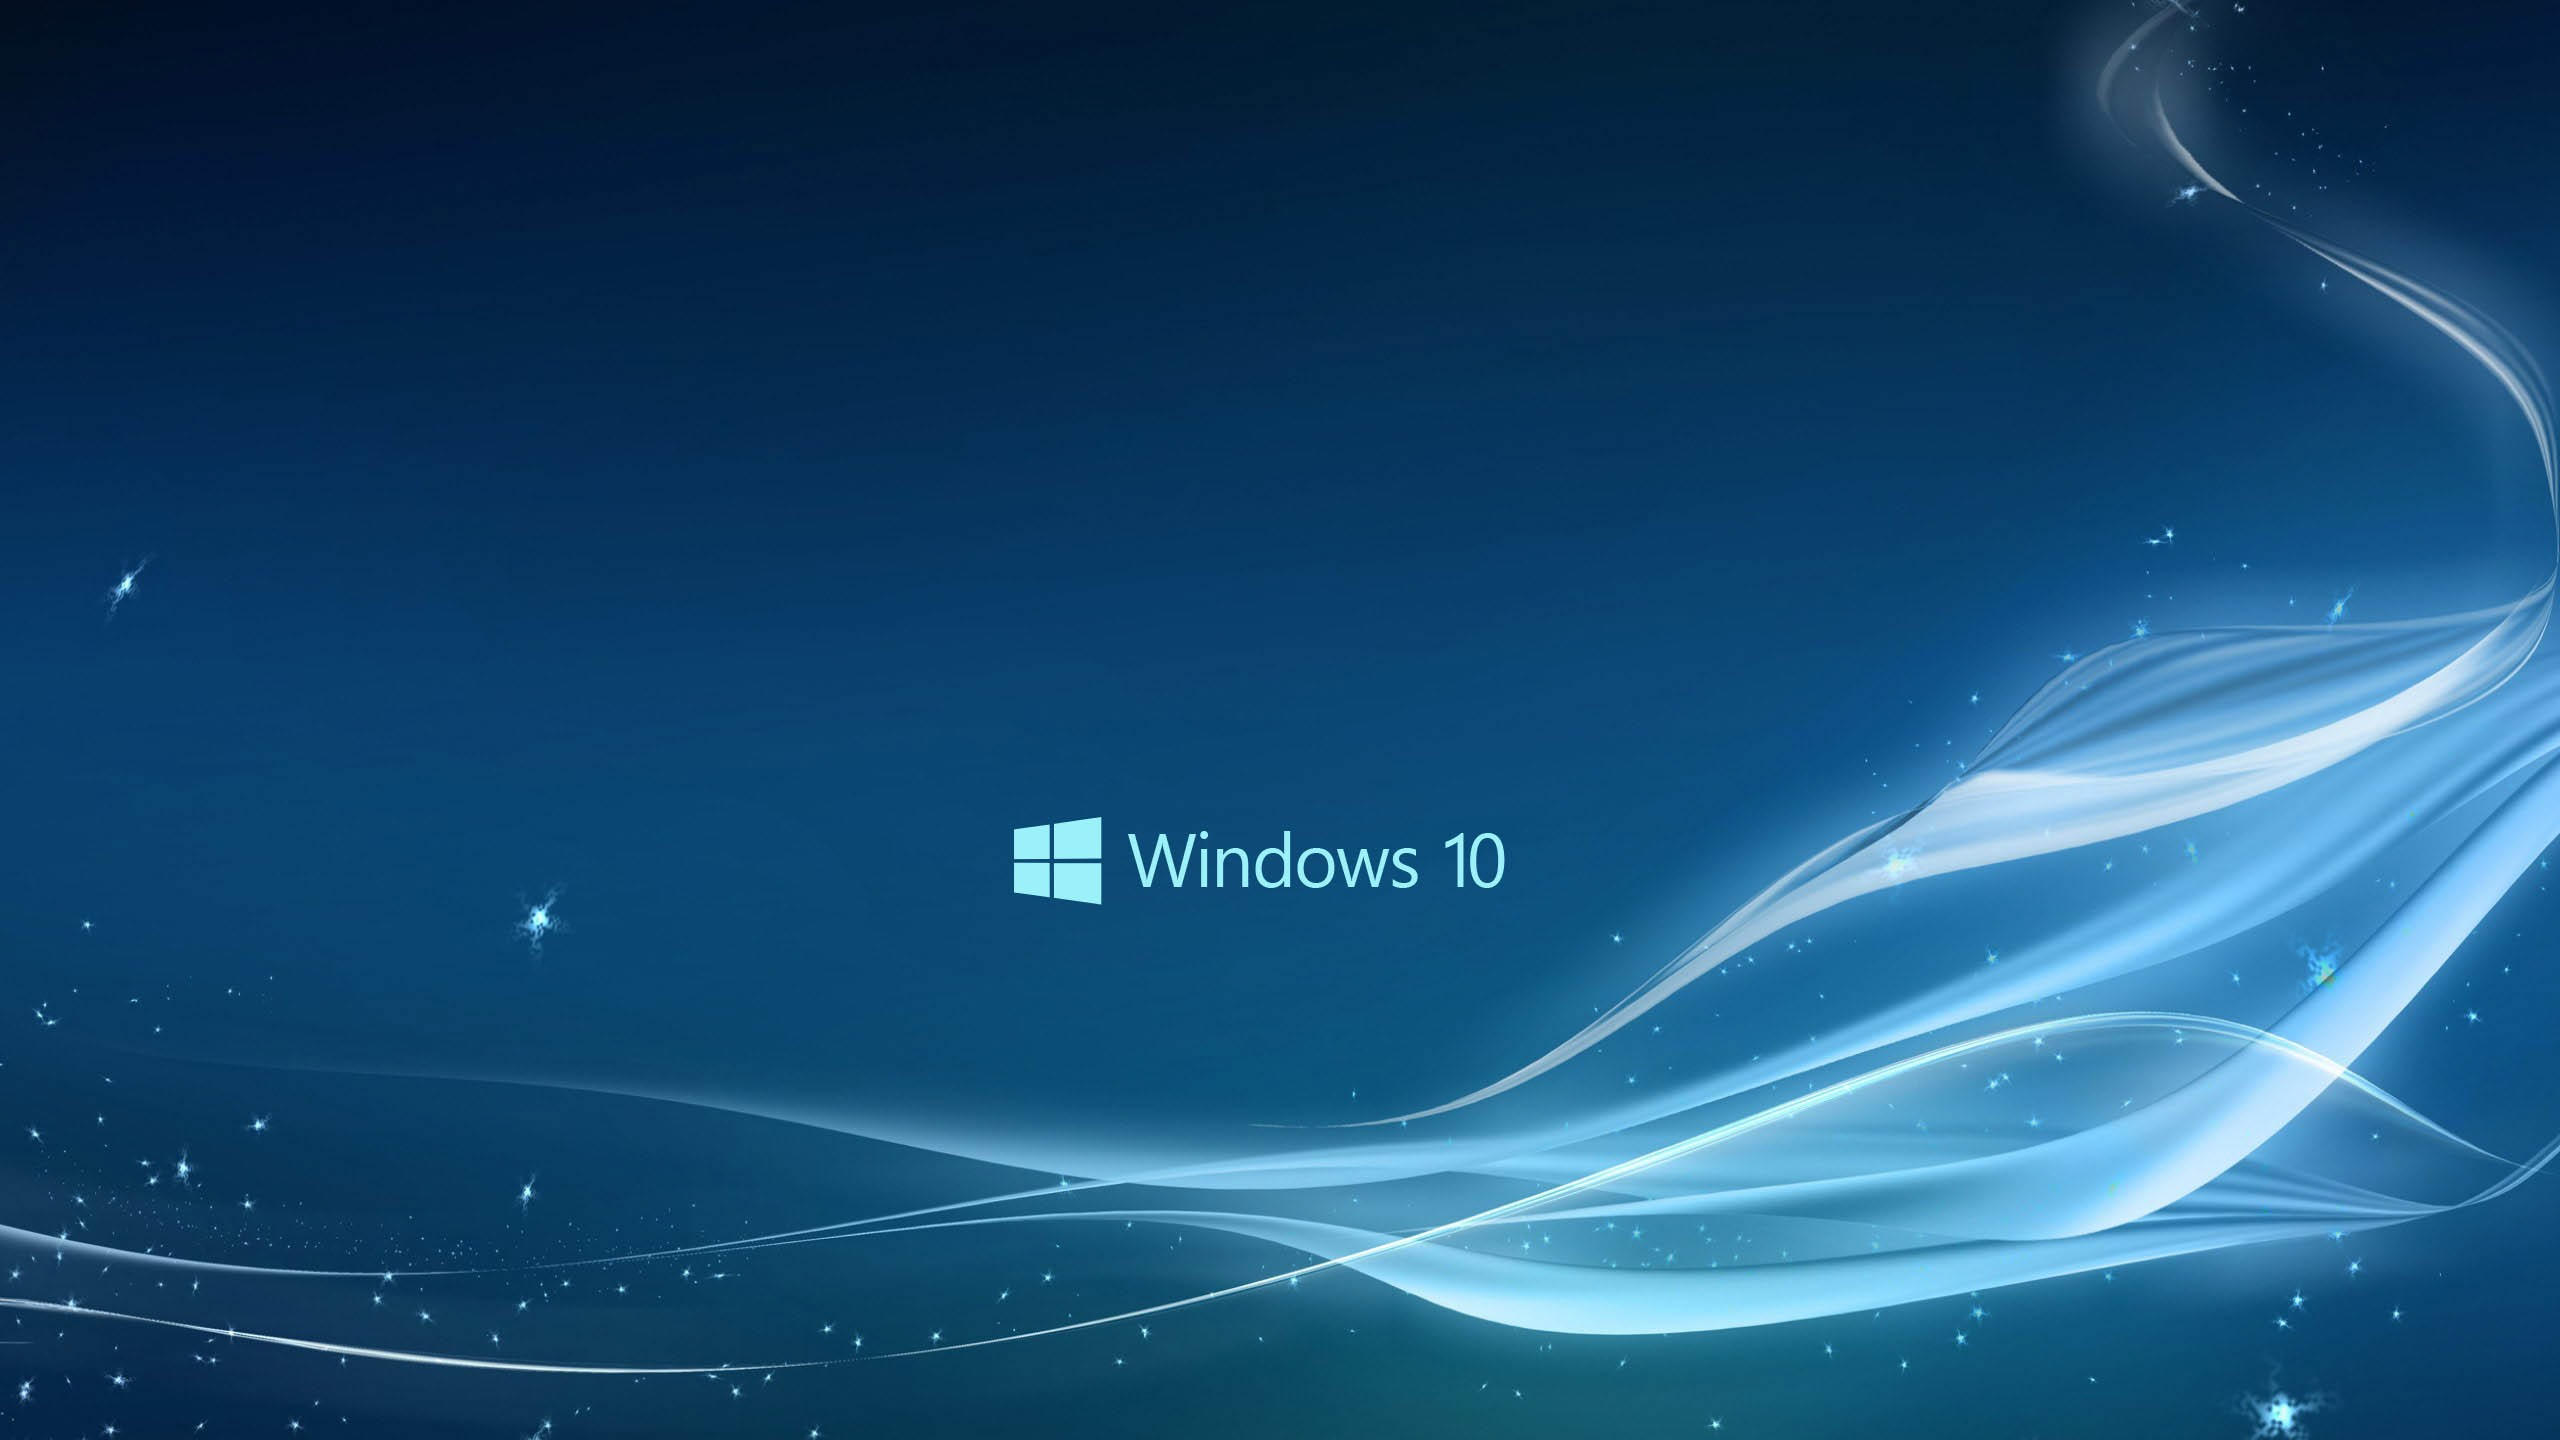 Windows 10 HD wallpaper 2015 2560x1440   Wallpaper   Wallpaper Style 2560x1440